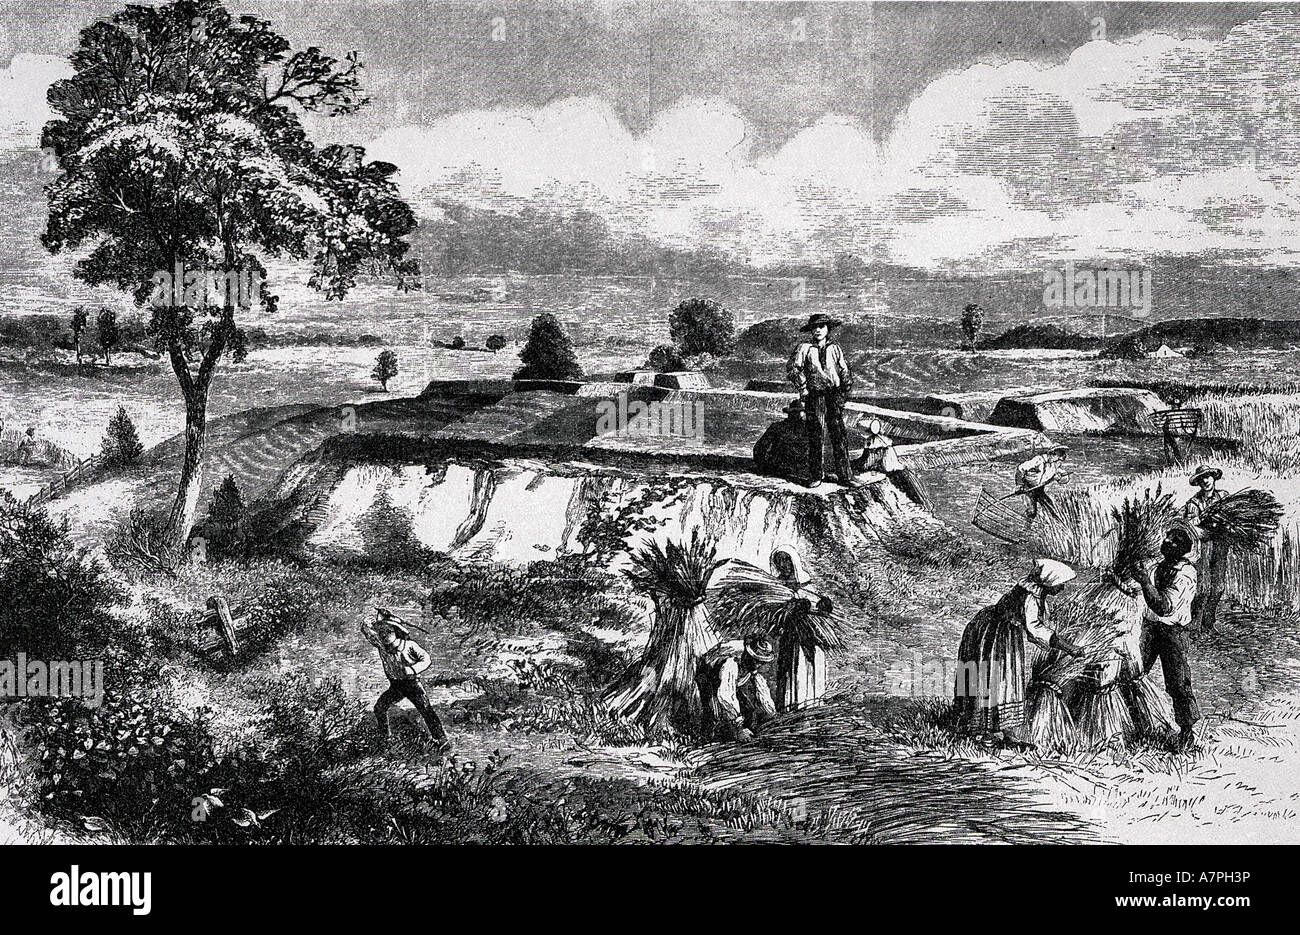 RECONSTRUCTION  an optimistic view published in 1867 of  developments in the American South after the Civil War - Stock Image